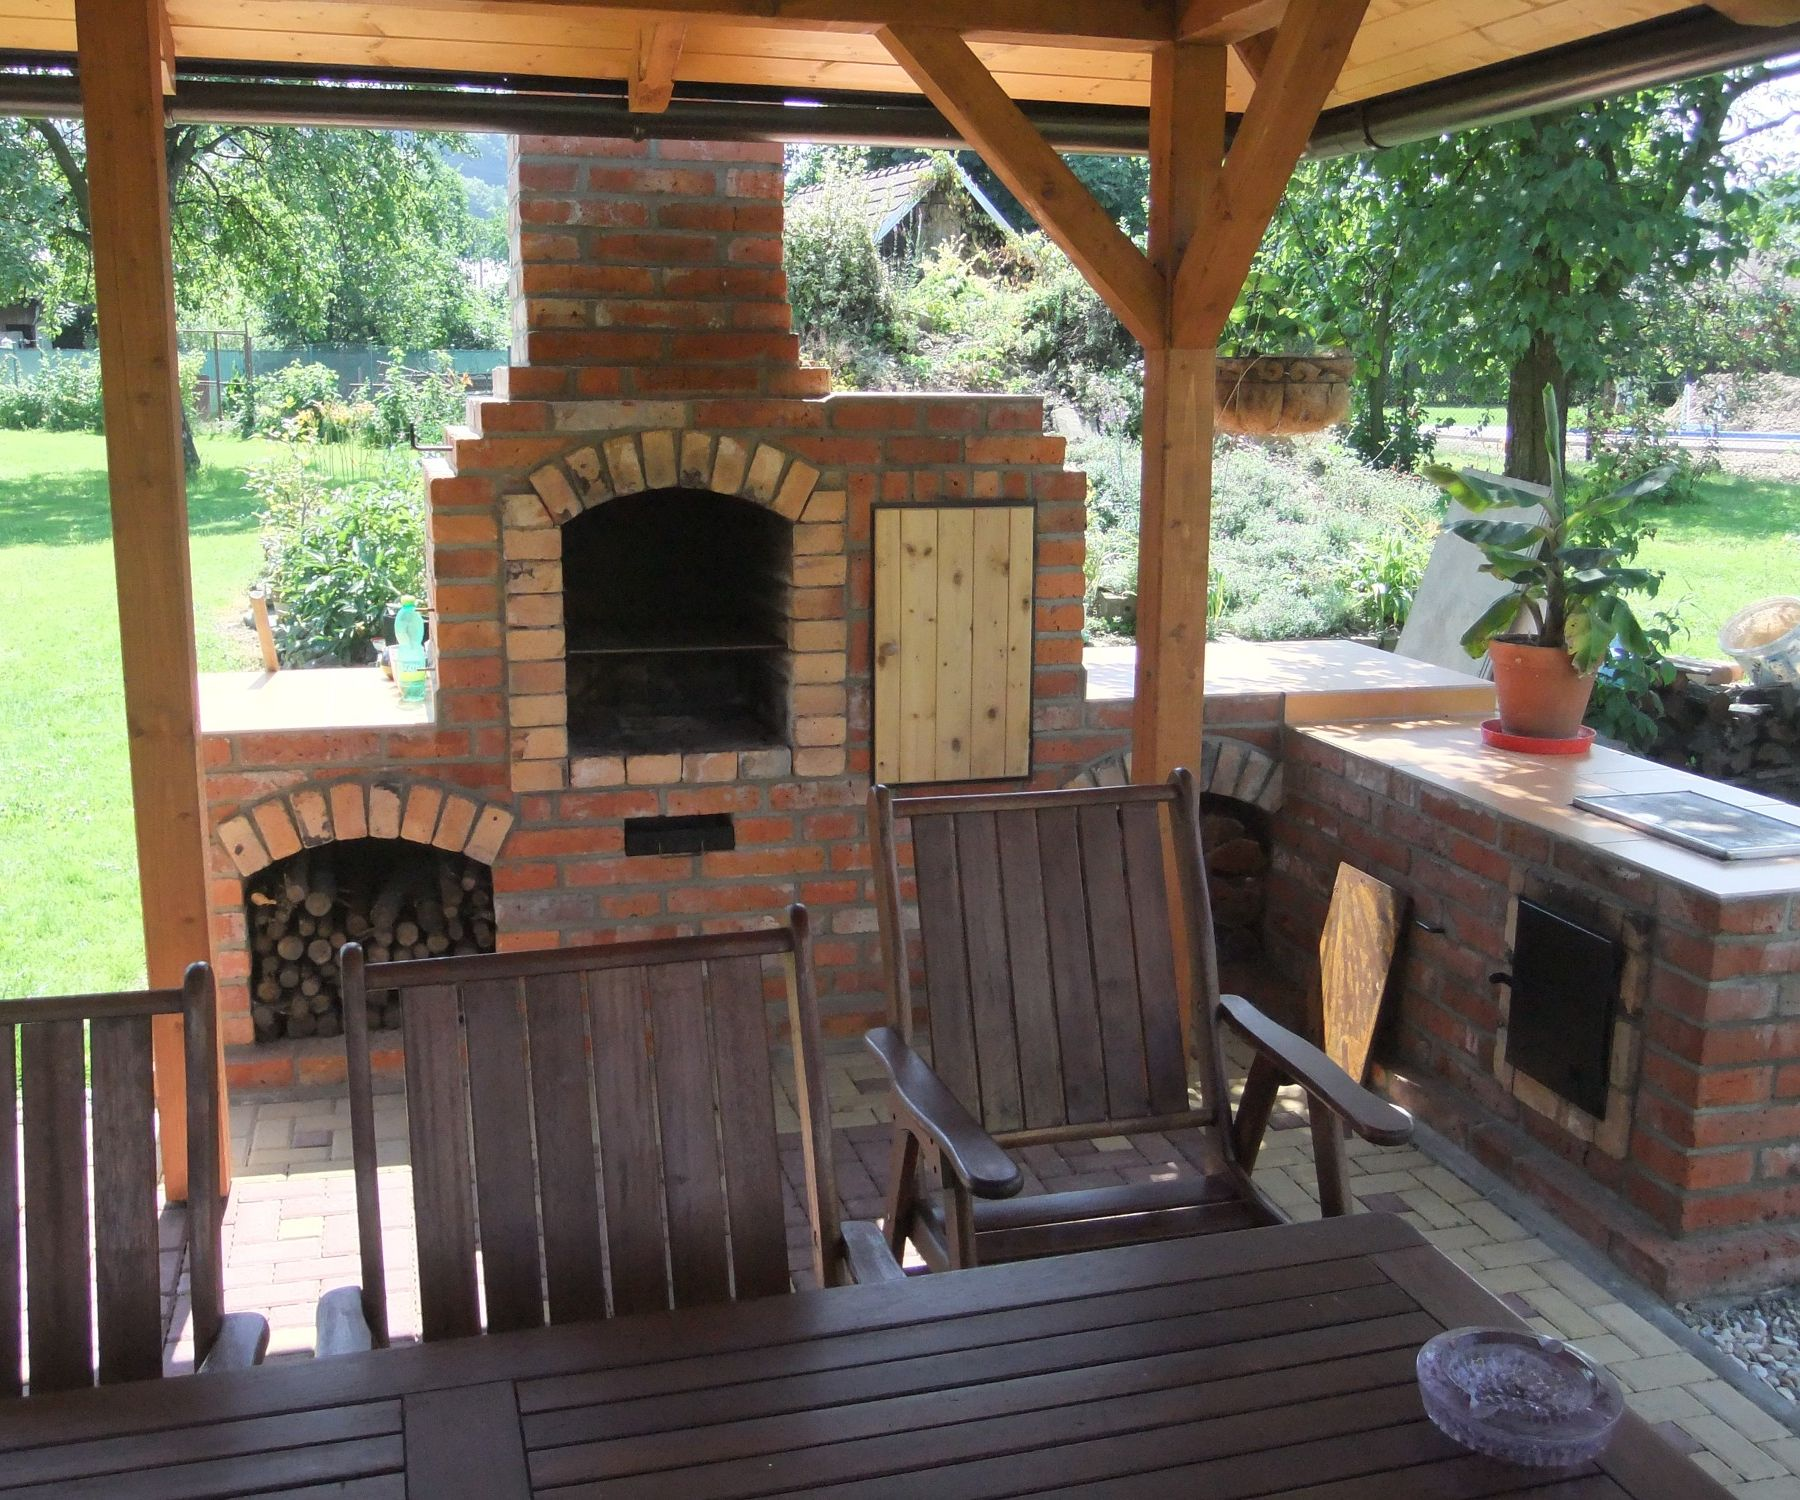 DIY Outdoor Fireplace With BBQ Grill /brick/ - Instructables on Diy Outdoor Fire  id=94273